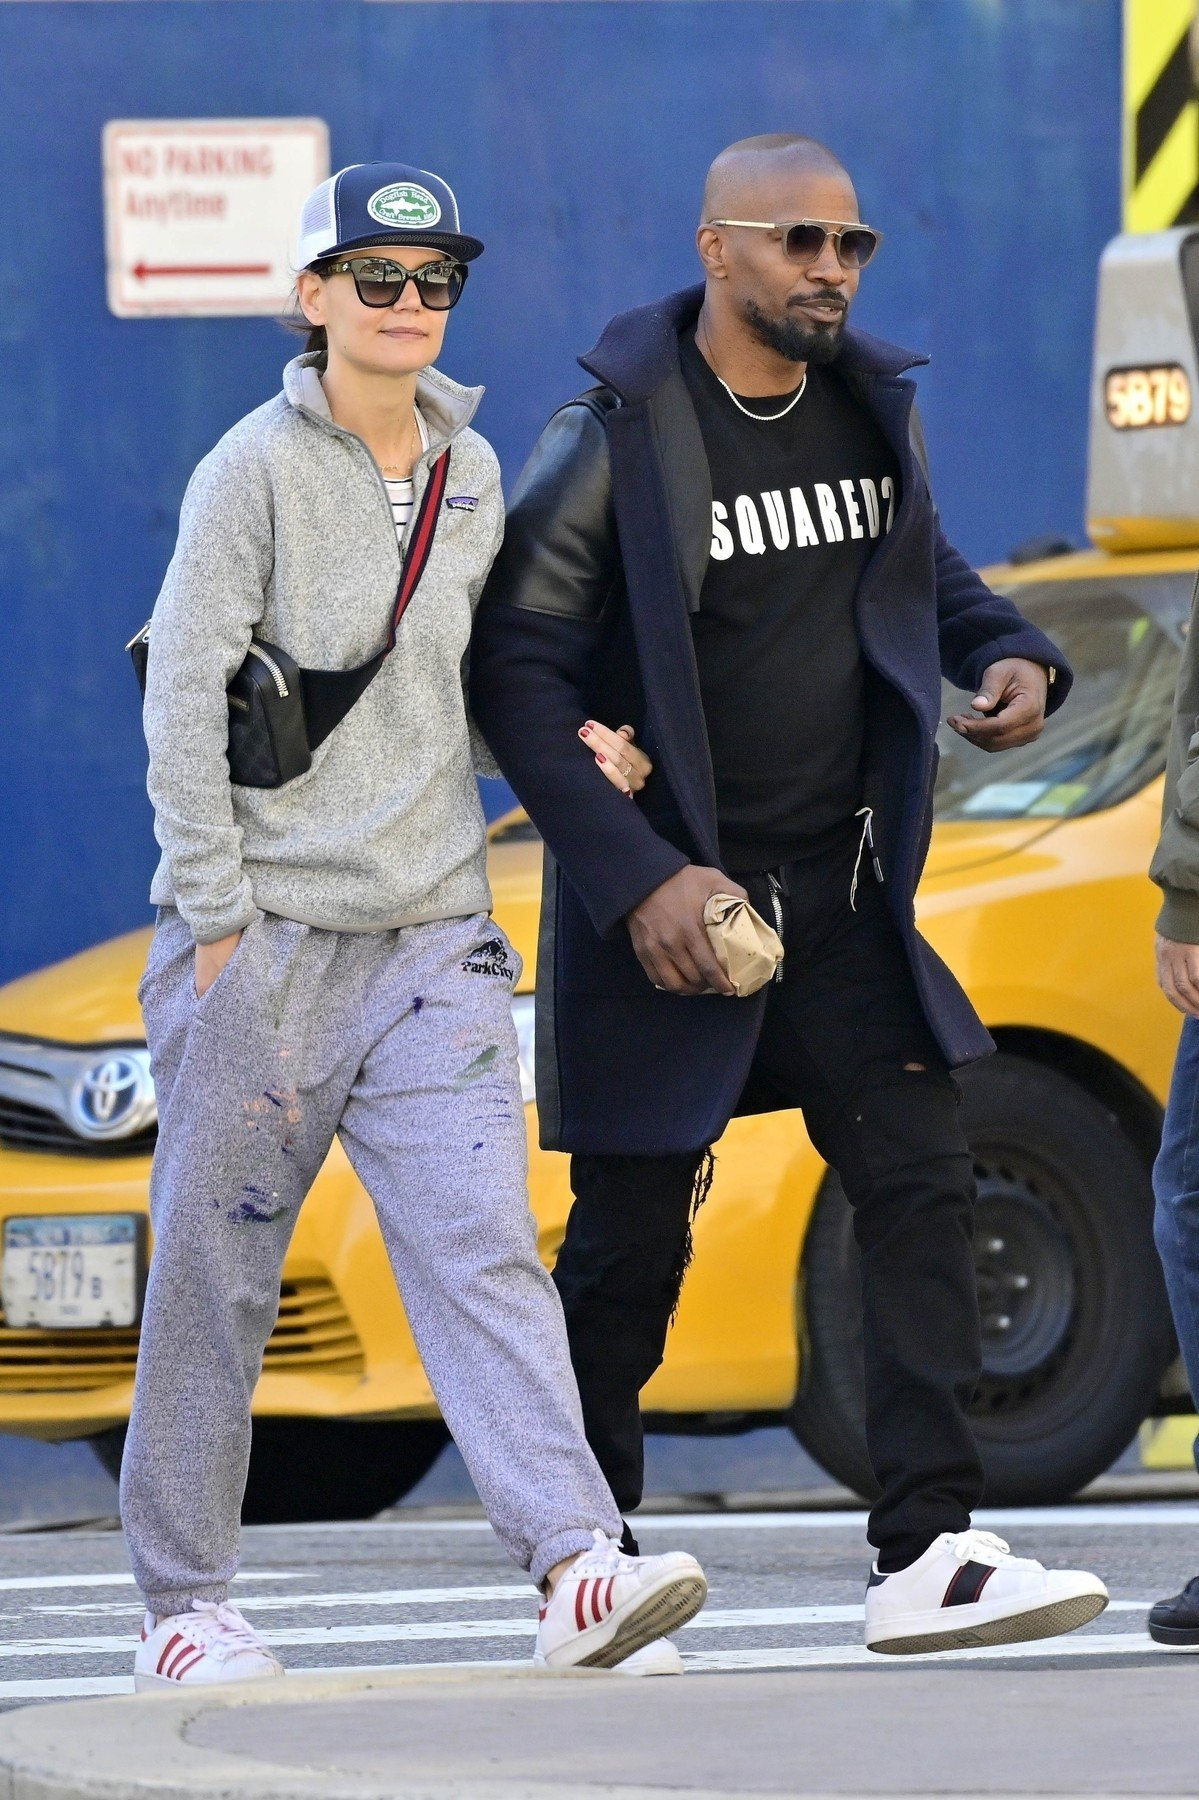 ** RIGHTS: WORLDWIDE EXCEPT IN FRANCE, GERMANY, POLAND ** New York, NY  - *EXCLUSIVE*  - Katie Holmes and Jamie Foxx show their love for each other as they hold hands after brunch. The duo are seen heading to Katie's apartment.  Pictured: Jamie Foxx, Katie Holmes  BACKGRID USA 16 APRIL 2019, Image: 426442972, License: Rights-managed, Restrictions: , Model Release: no, Credit line: Profimedia, Backgrid USA